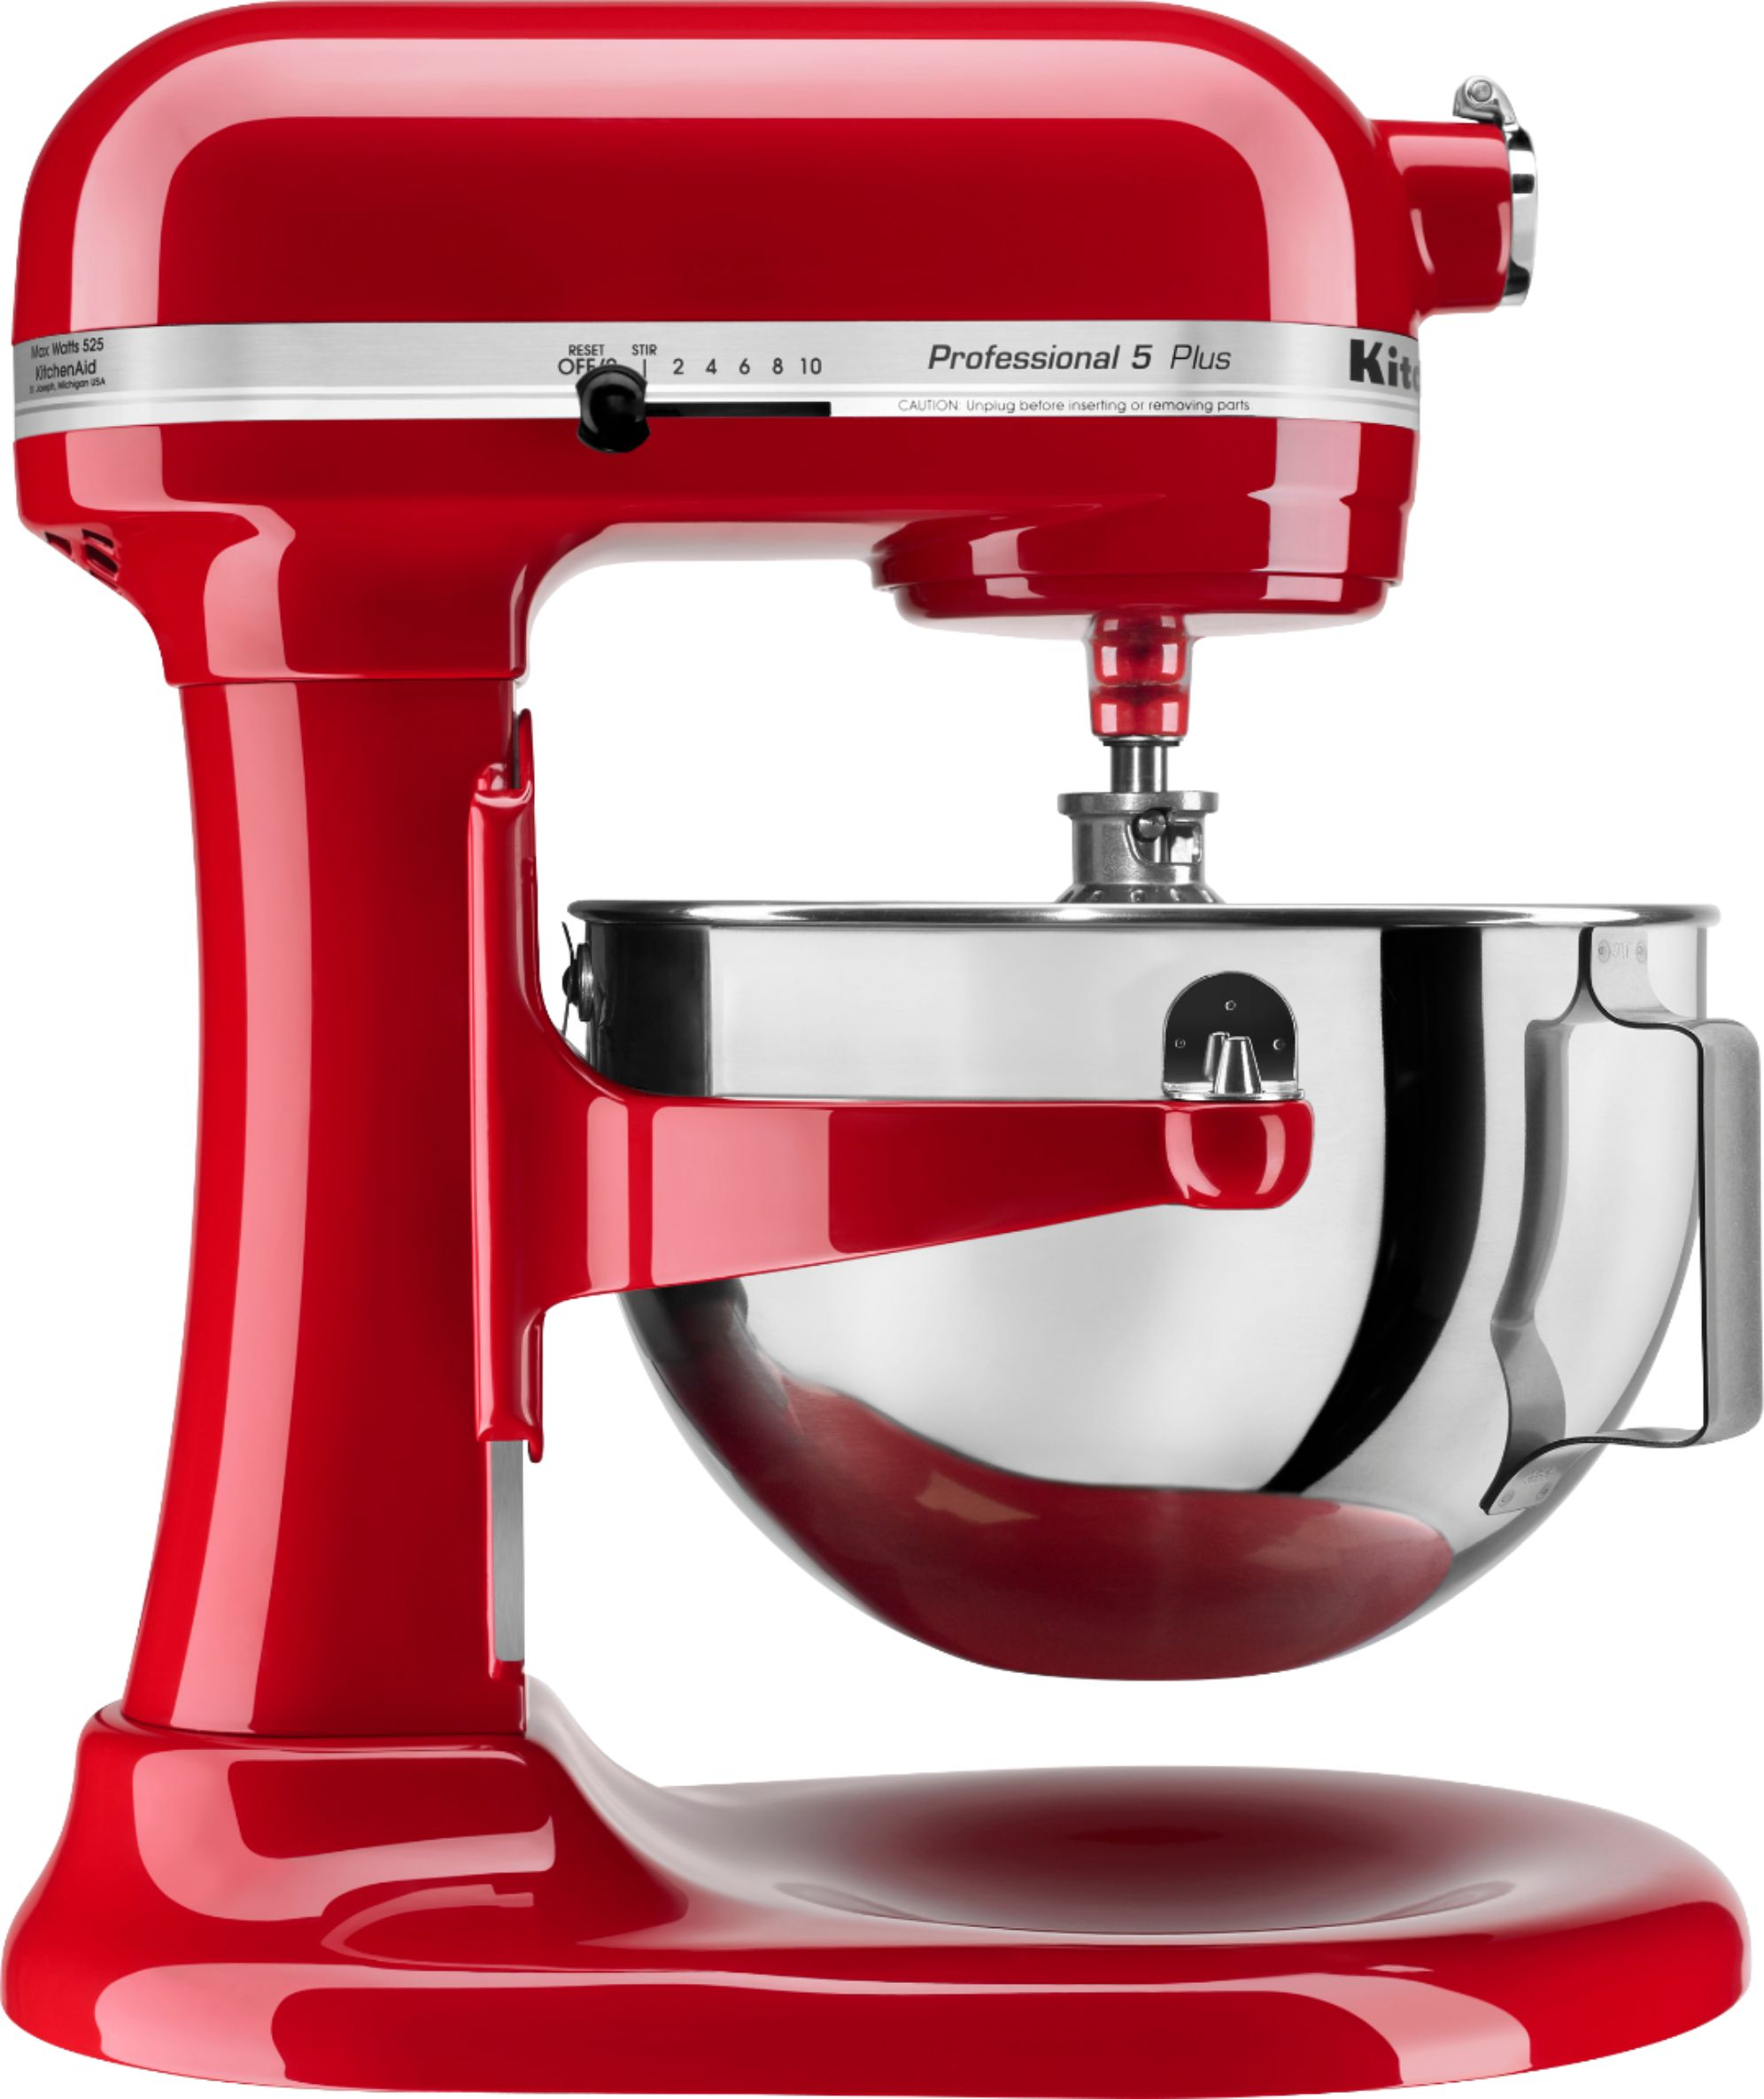 KitchenAid - Professional 5 Plus Series Stand Mixer - Empire Red - Angle Zoom